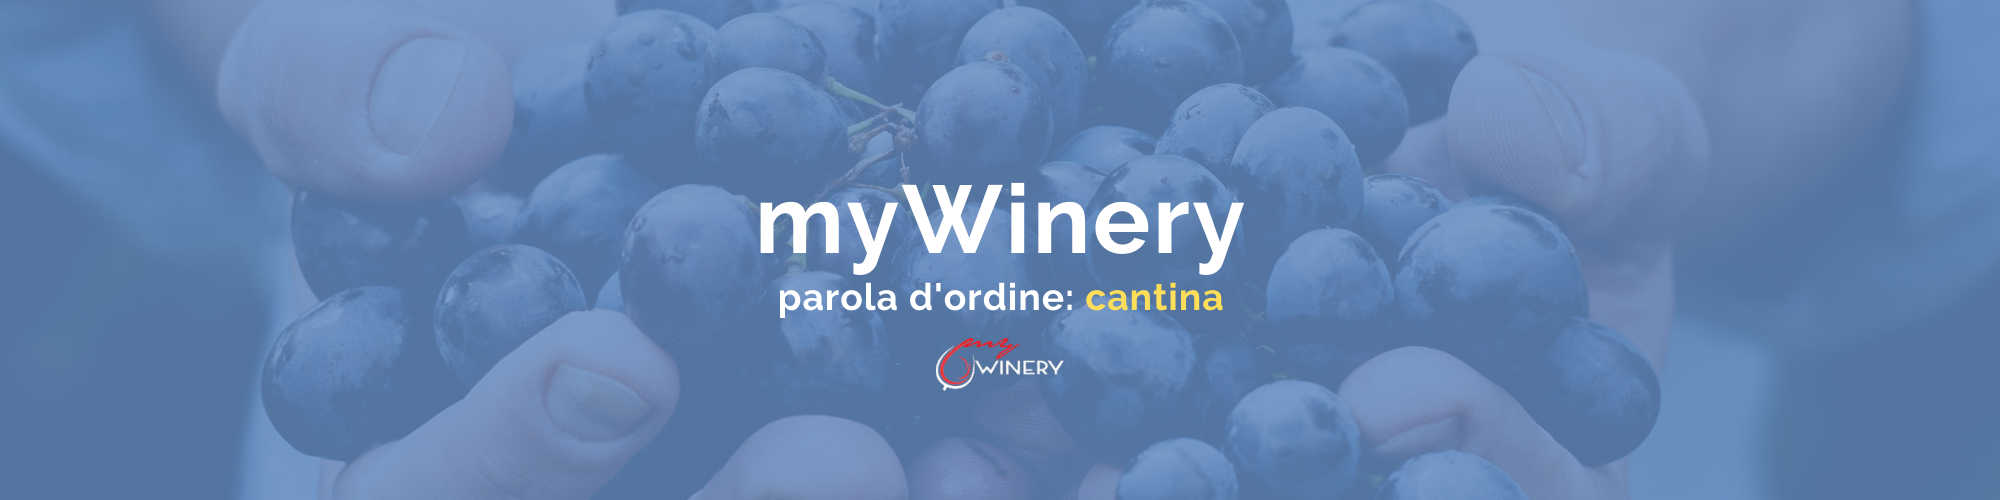 banner mywinery gestione cantina